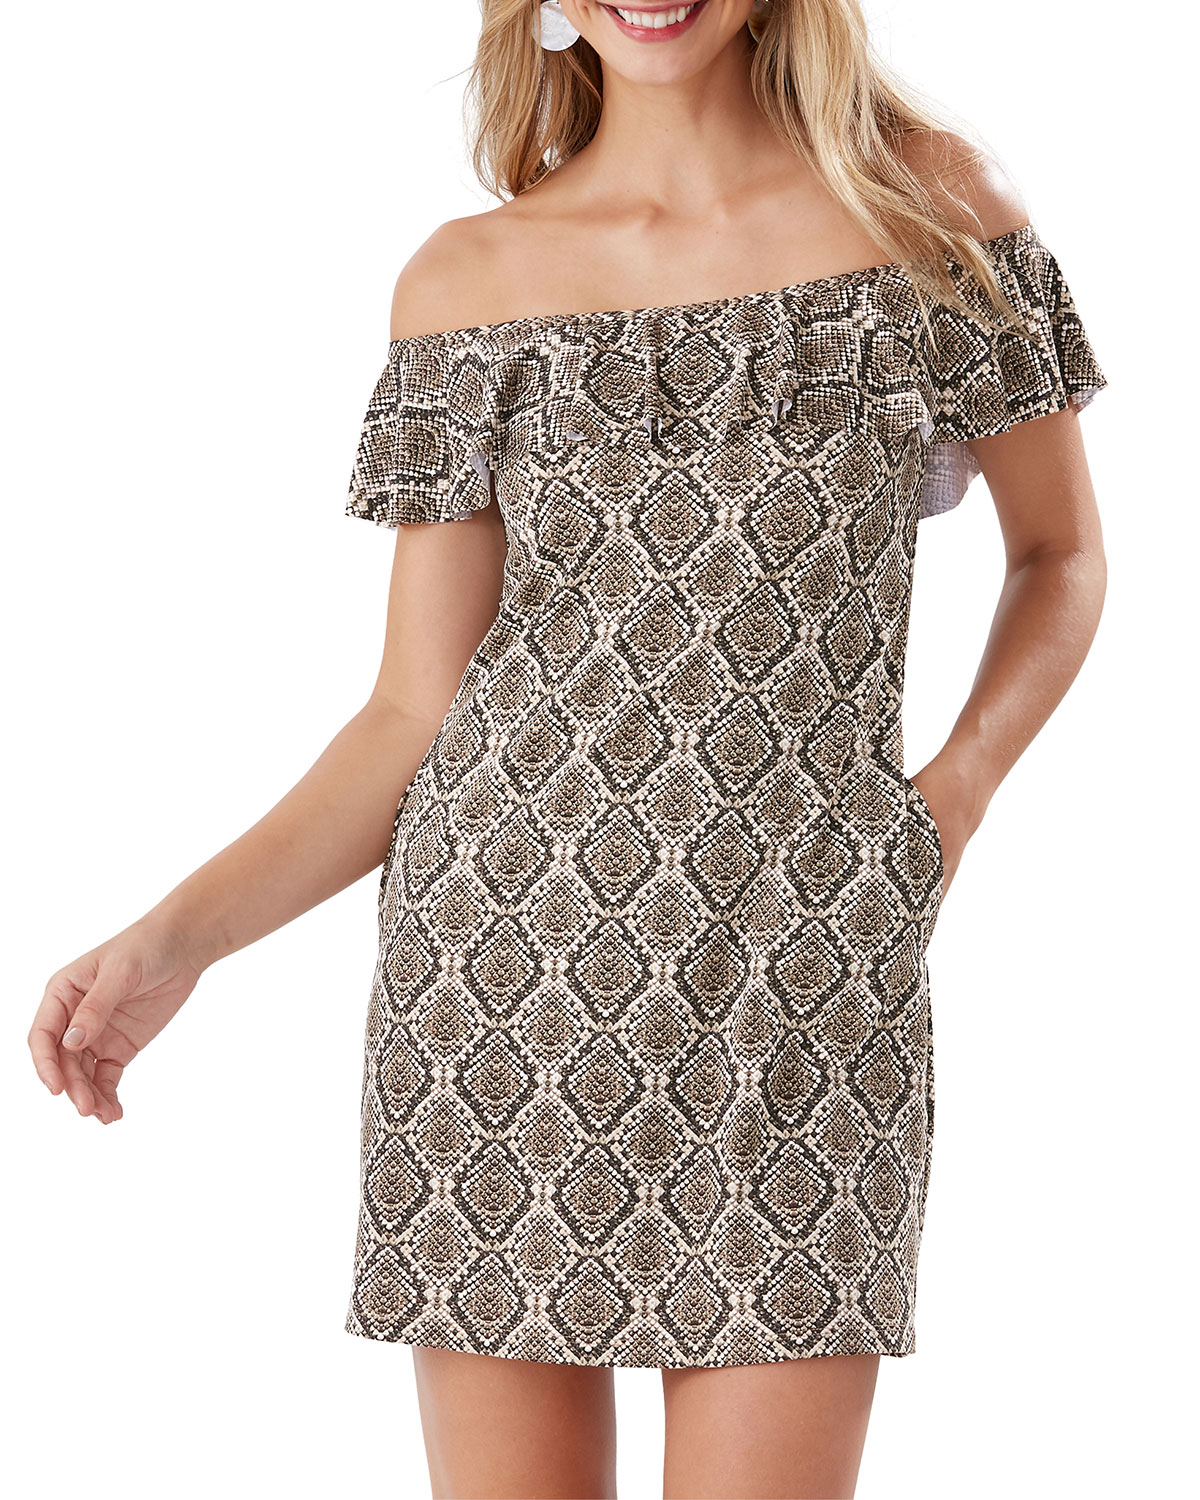 Tommy Bahama Dresses DESERT PYTHON OFF-SHOULDER RUFFLE SPA DRESS